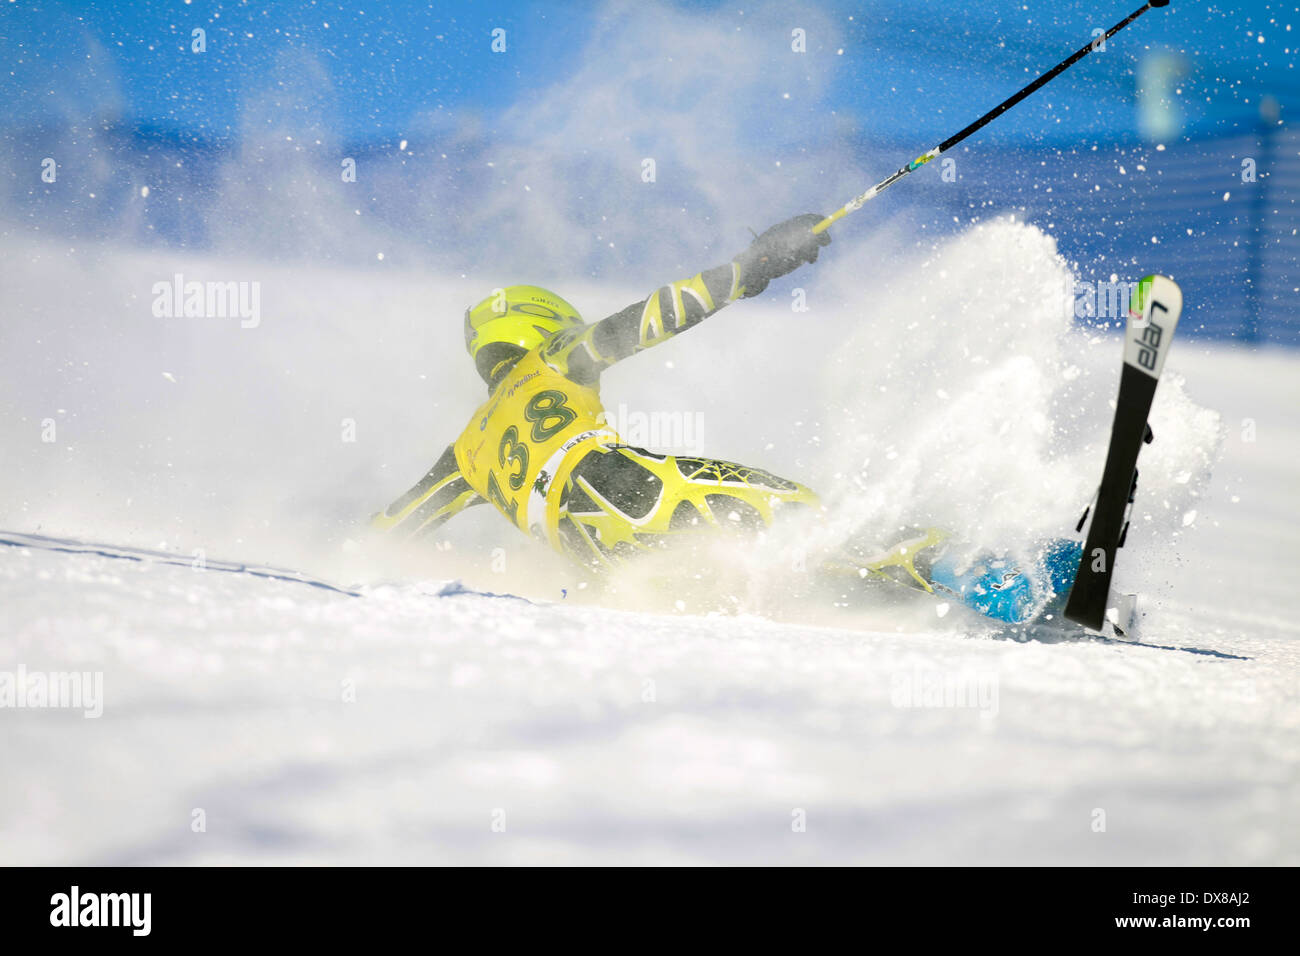 A snow skier falling out of control while racing on the giant slalom course. - Stock Image